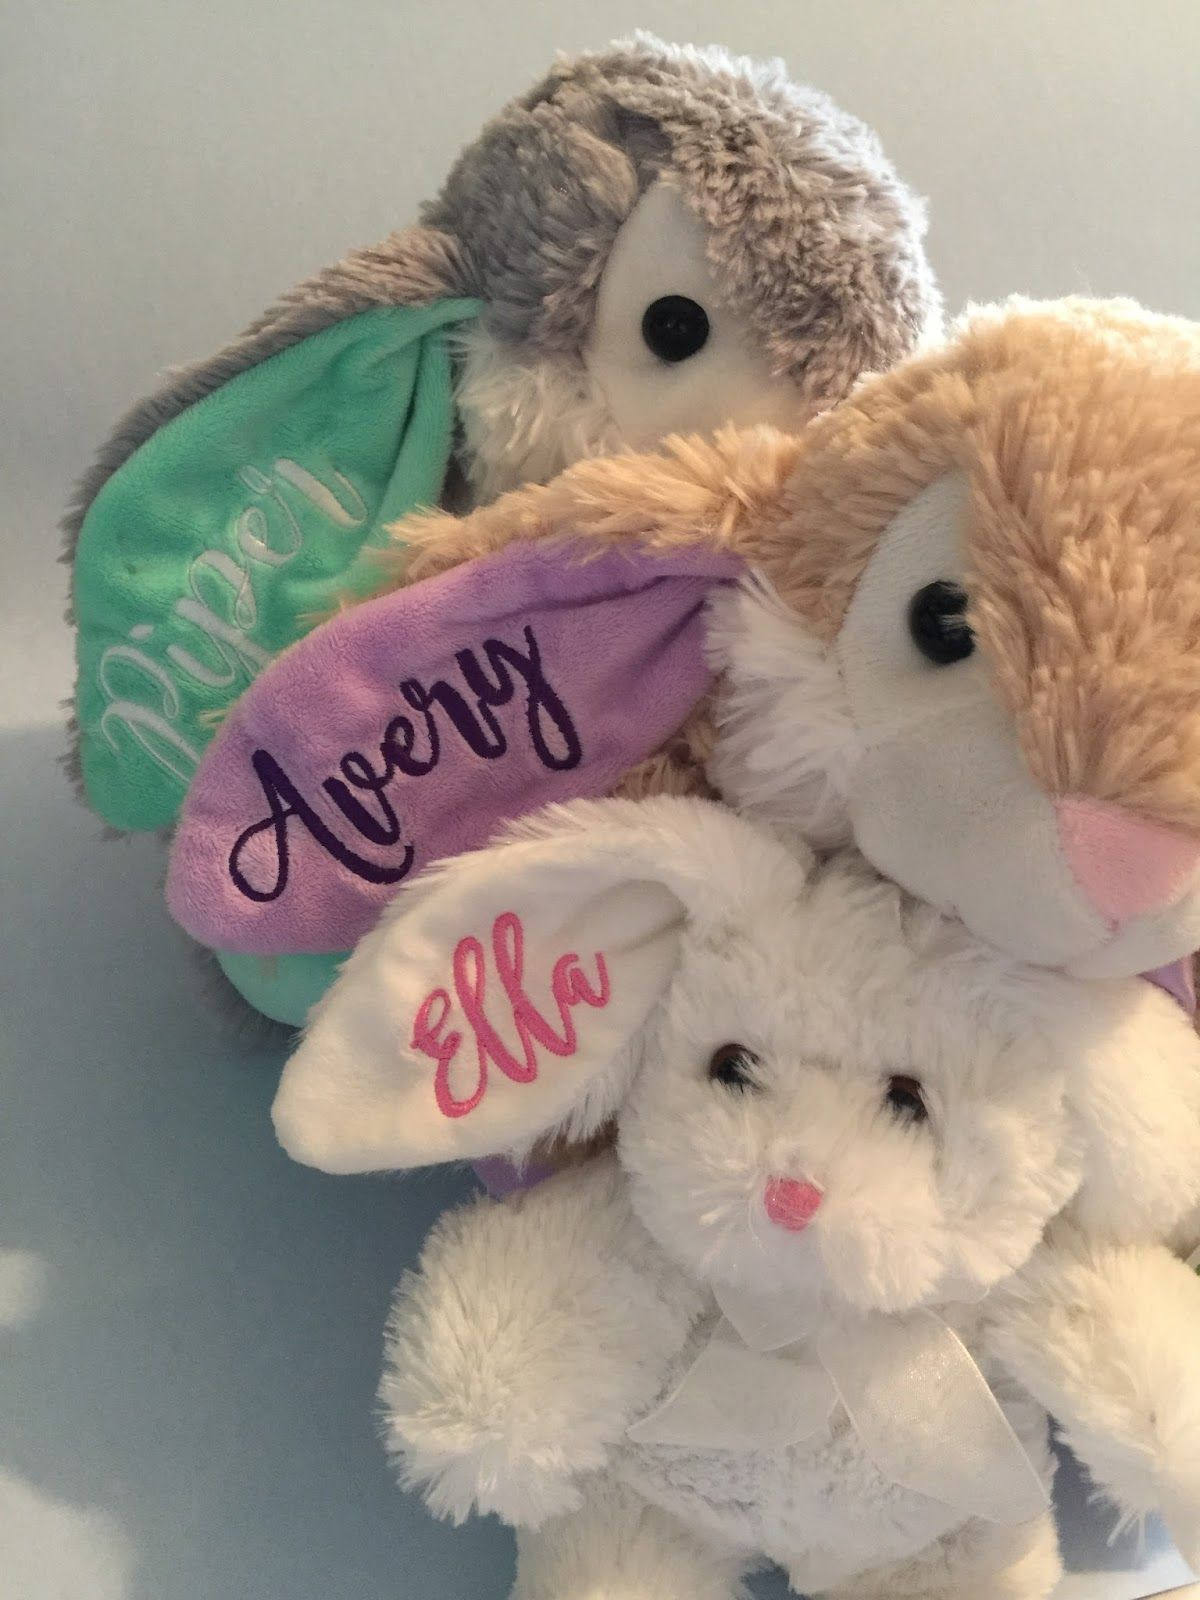 Last year, I finally embroidered names on stuffed Easter bunnies for ...